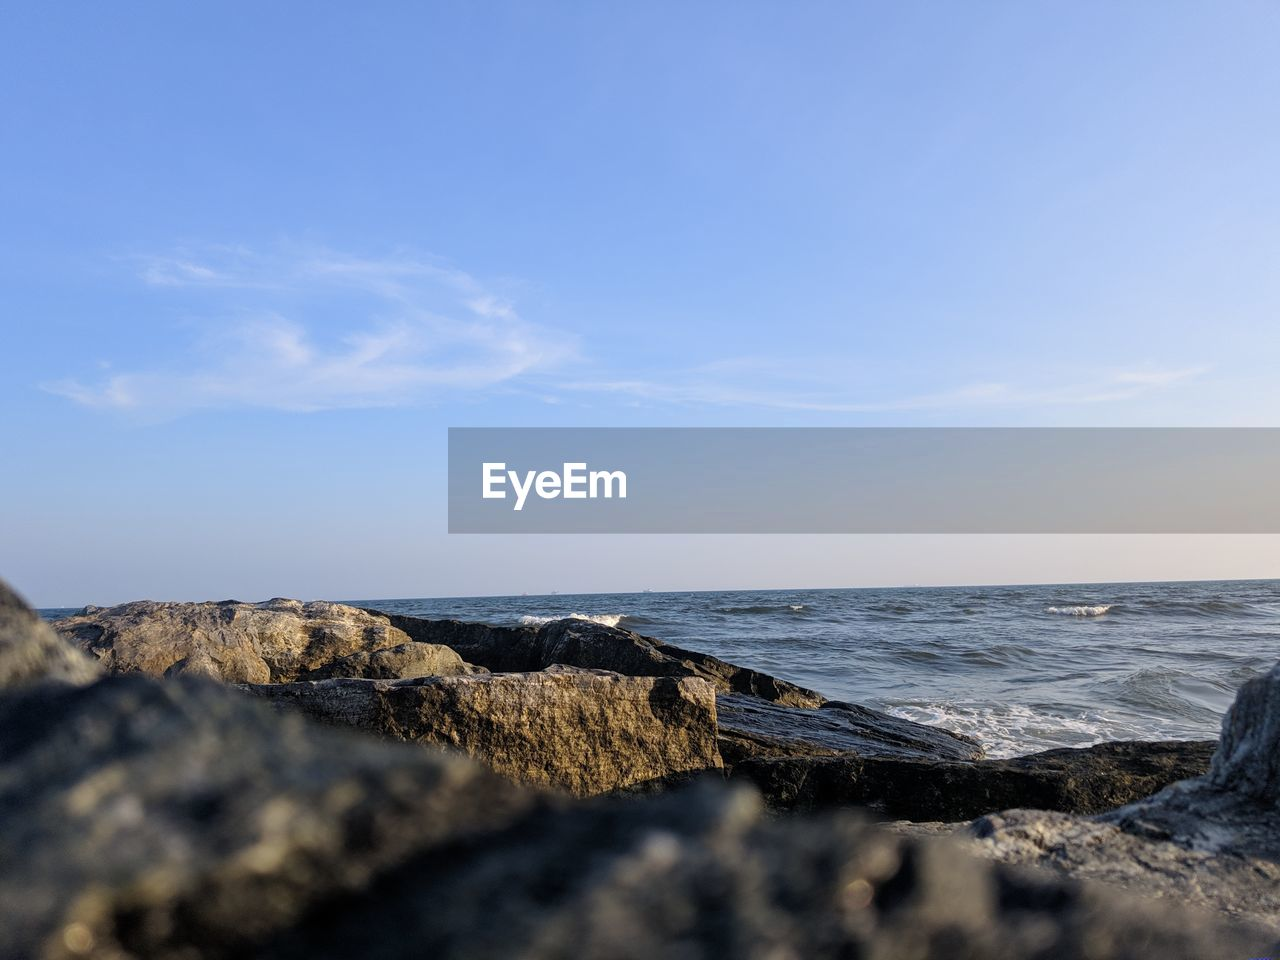 sea, sky, water, scenics - nature, beauty in nature, rock, solid, rock - object, land, beach, horizon over water, tranquility, tranquil scene, nature, horizon, no people, day, blue, cloud - sky, outdoors, rocky coastline